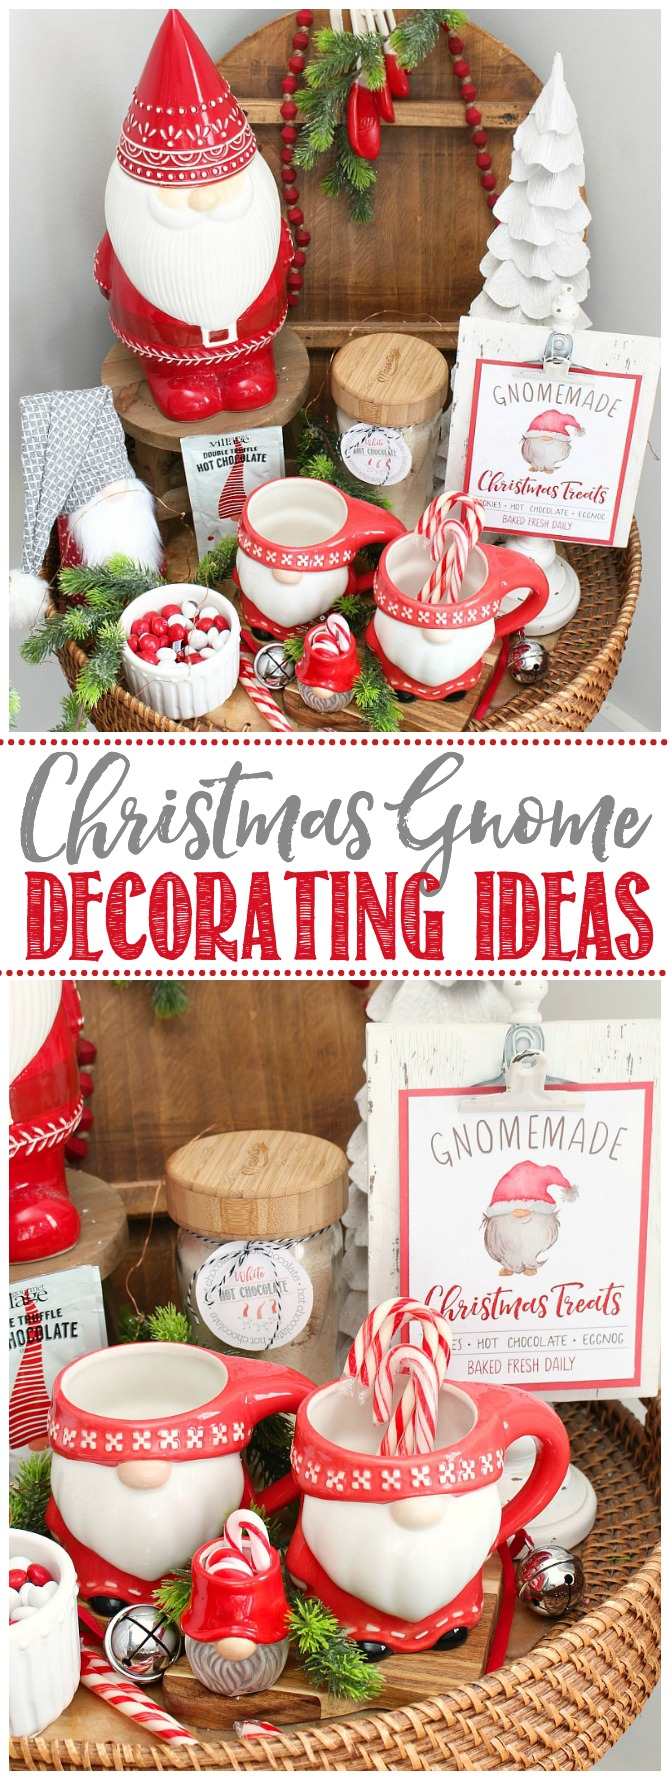 Cute Christmas gnome display in red and white.